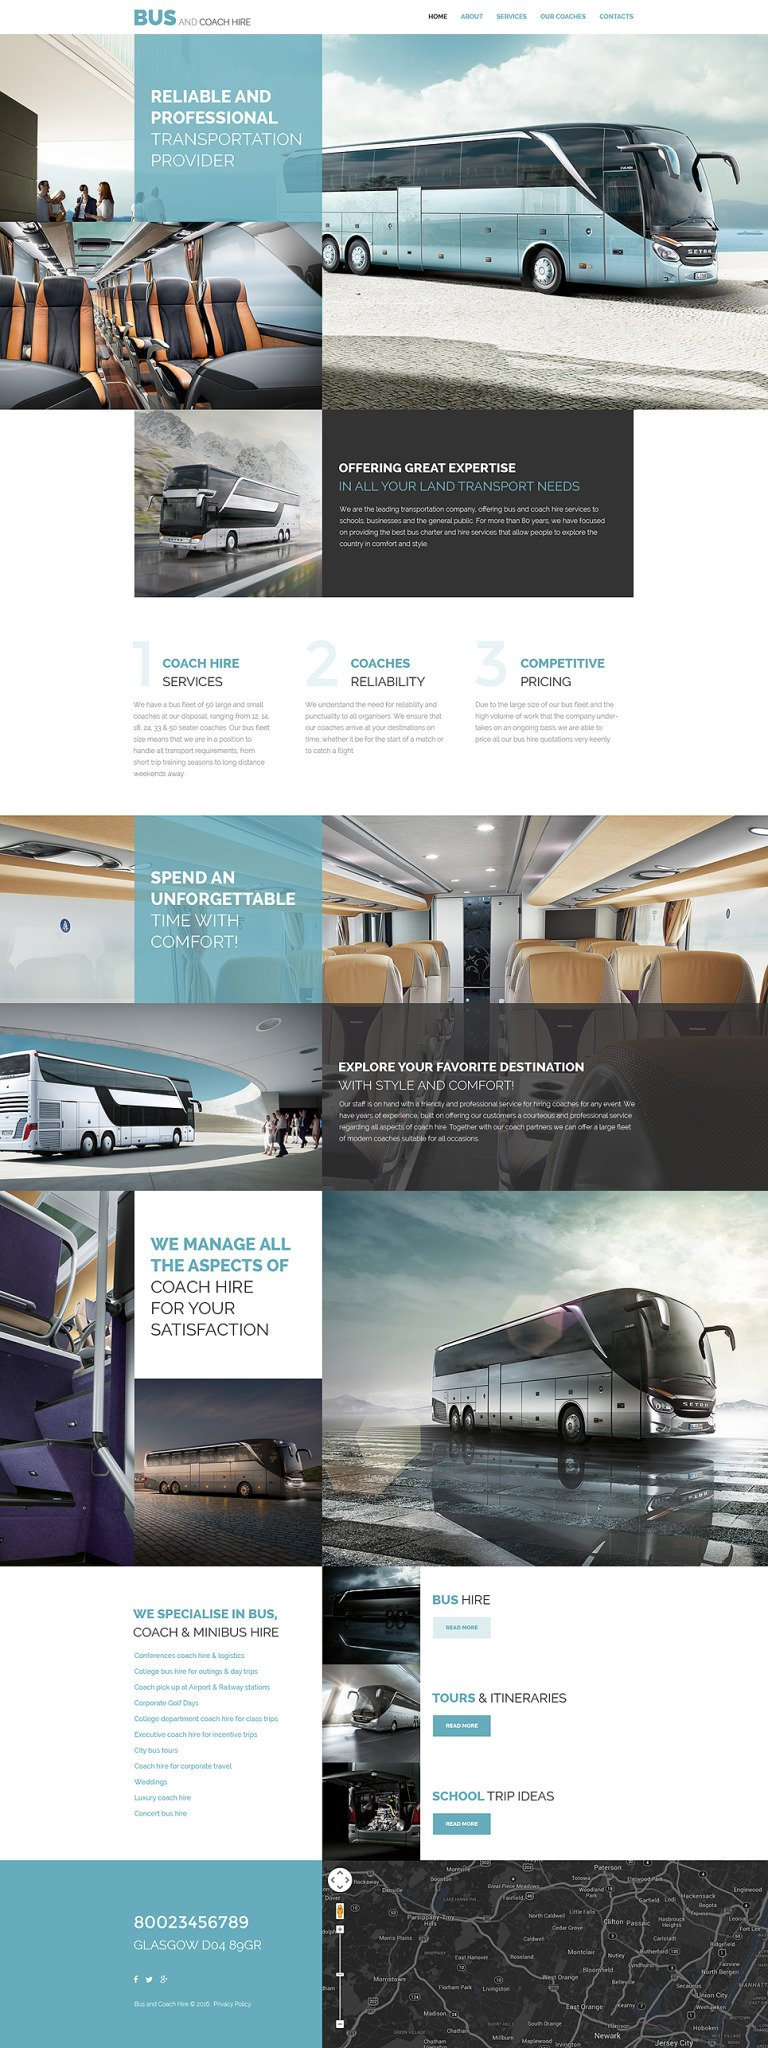 Bus and Coach Hire Website Template New Screenshots BIG